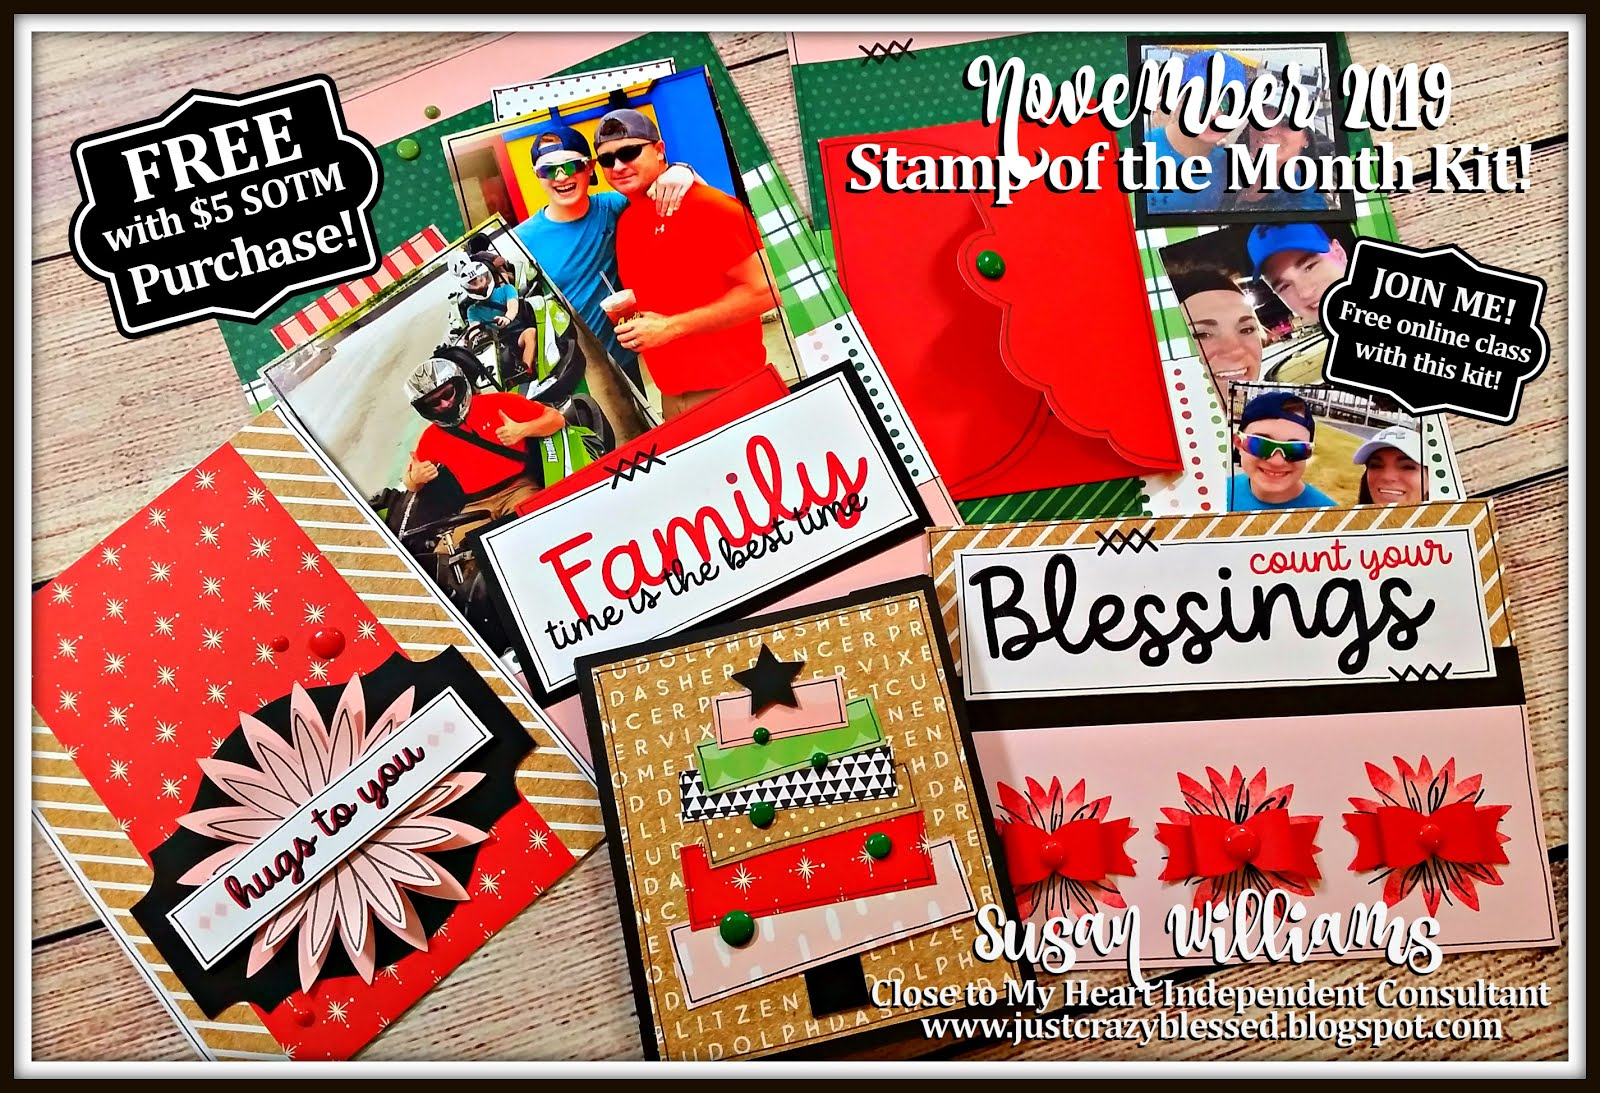 November 2019 Stamp of the Month Workshop!